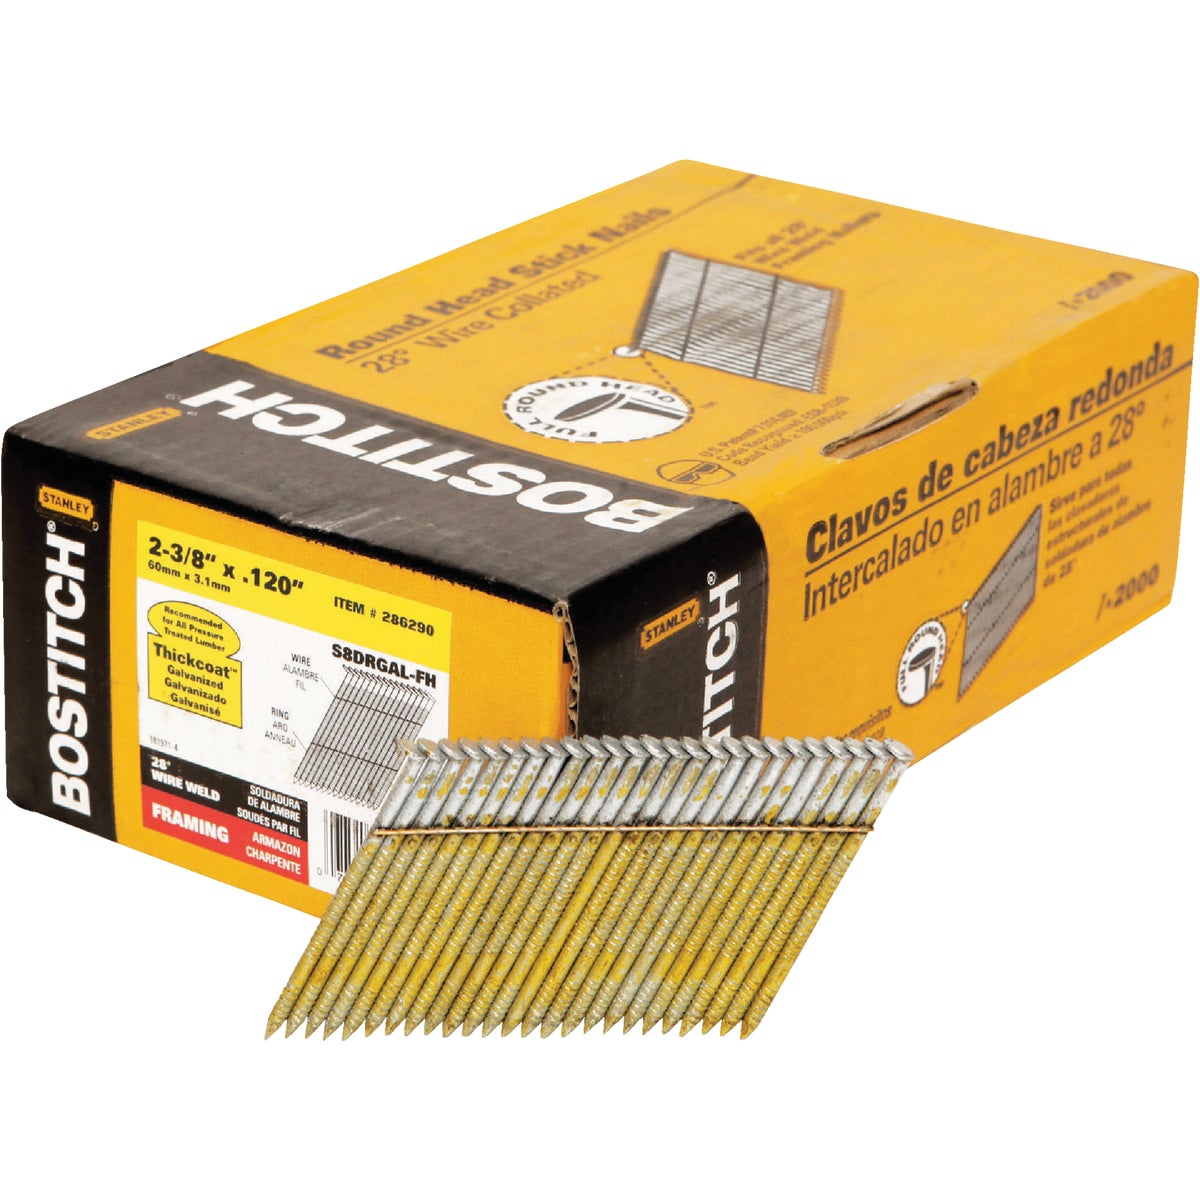 "2-3/8"" FRAMING NAIL - S8DRGAL-FH by Stanley Bostitch"